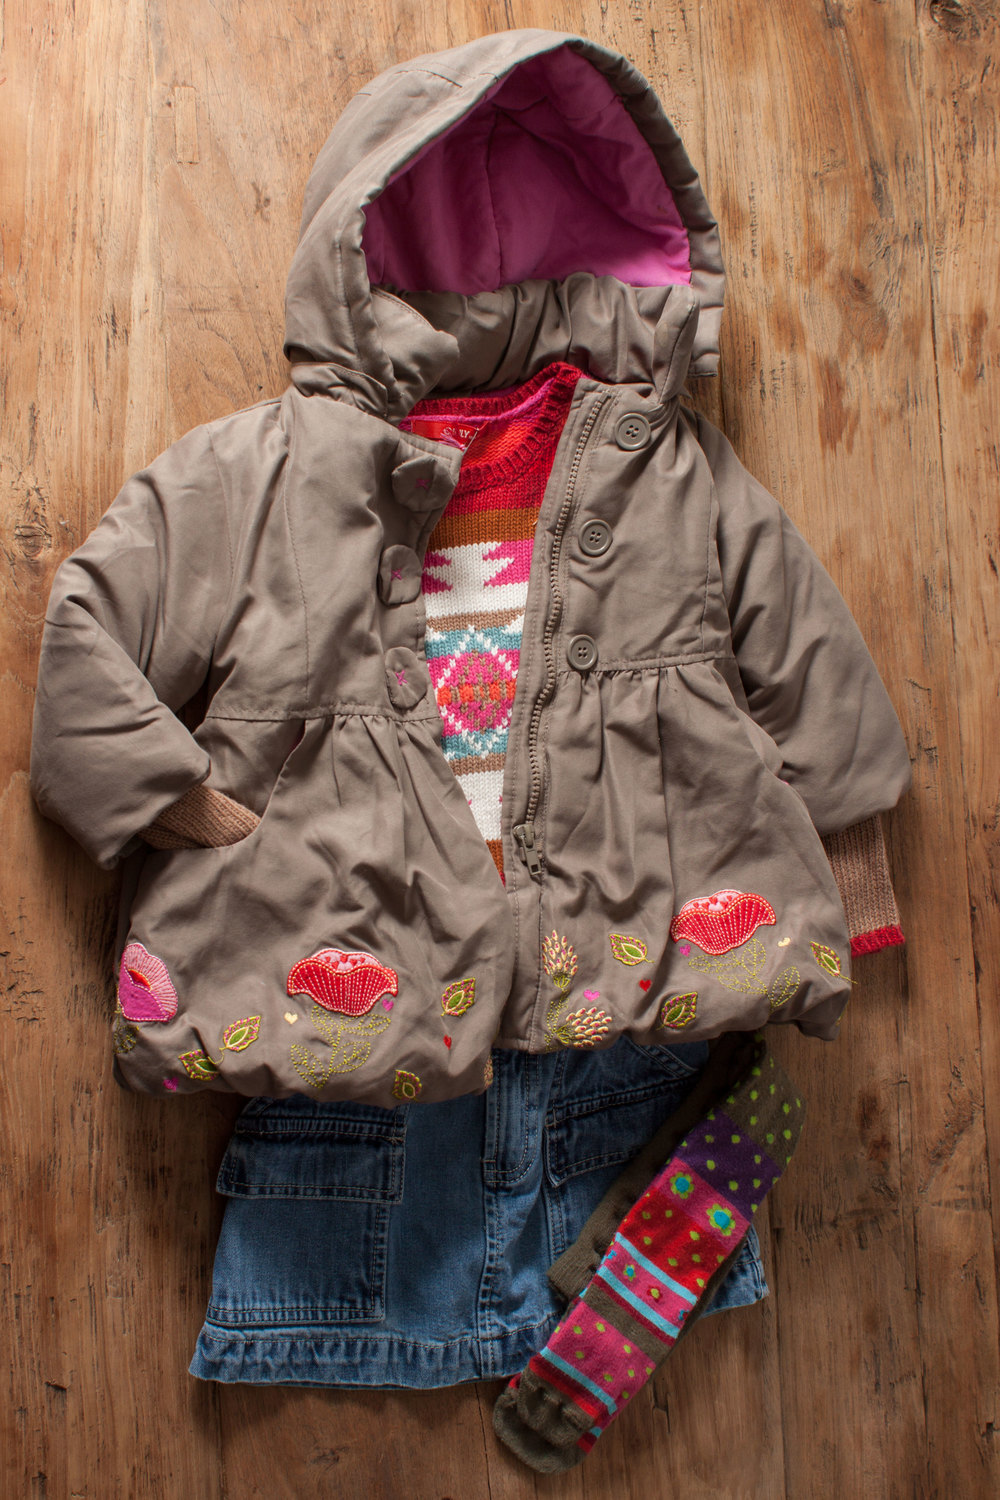 Image includes Girls John Lewis coat. Size: 18 months. $22.50.